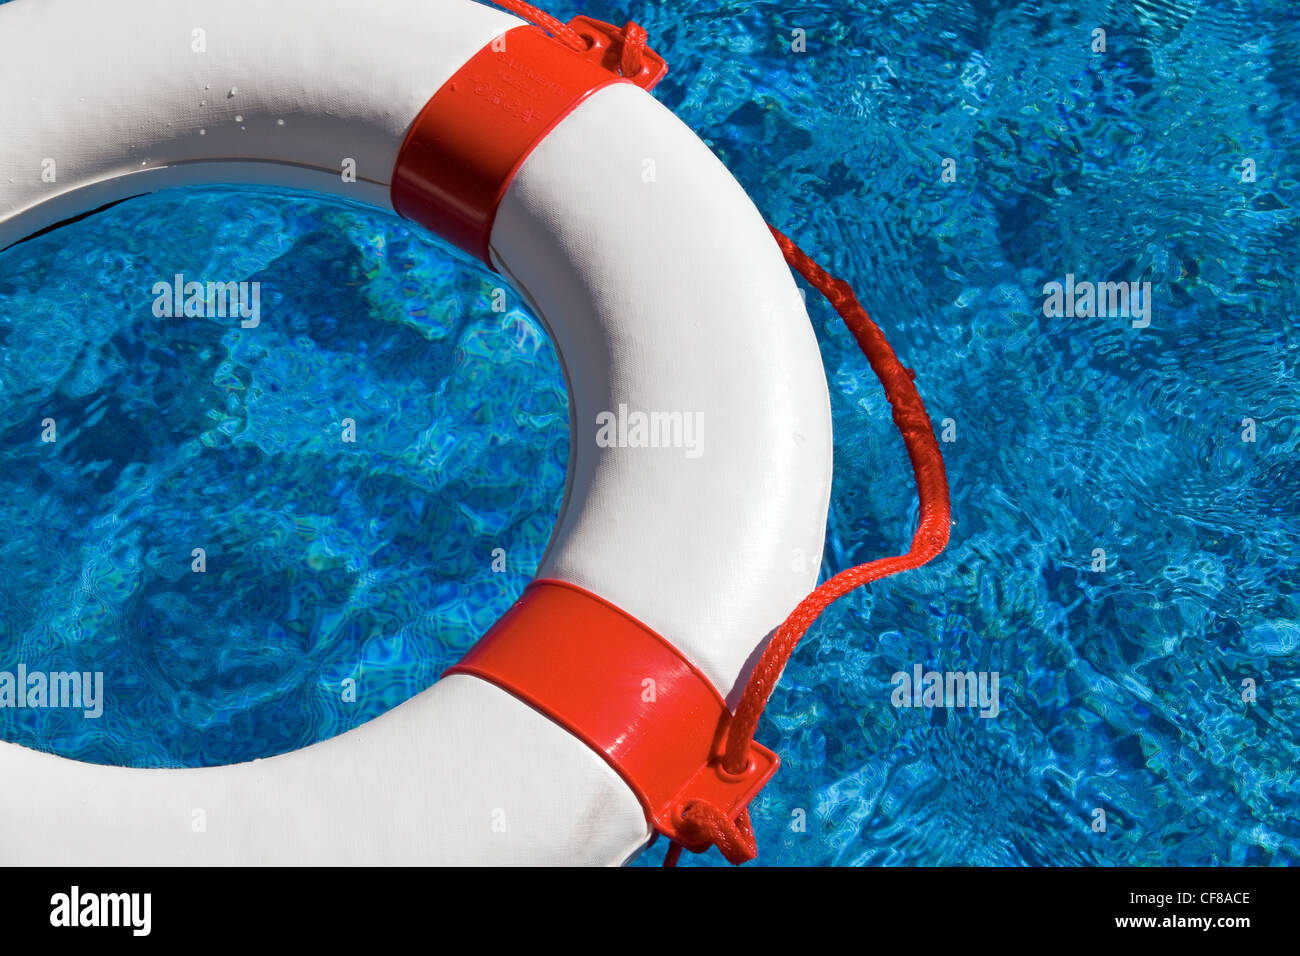 an emergency tire floating in a swimming pool. photo icon for aid, debt and bankruptcy - Stock Image